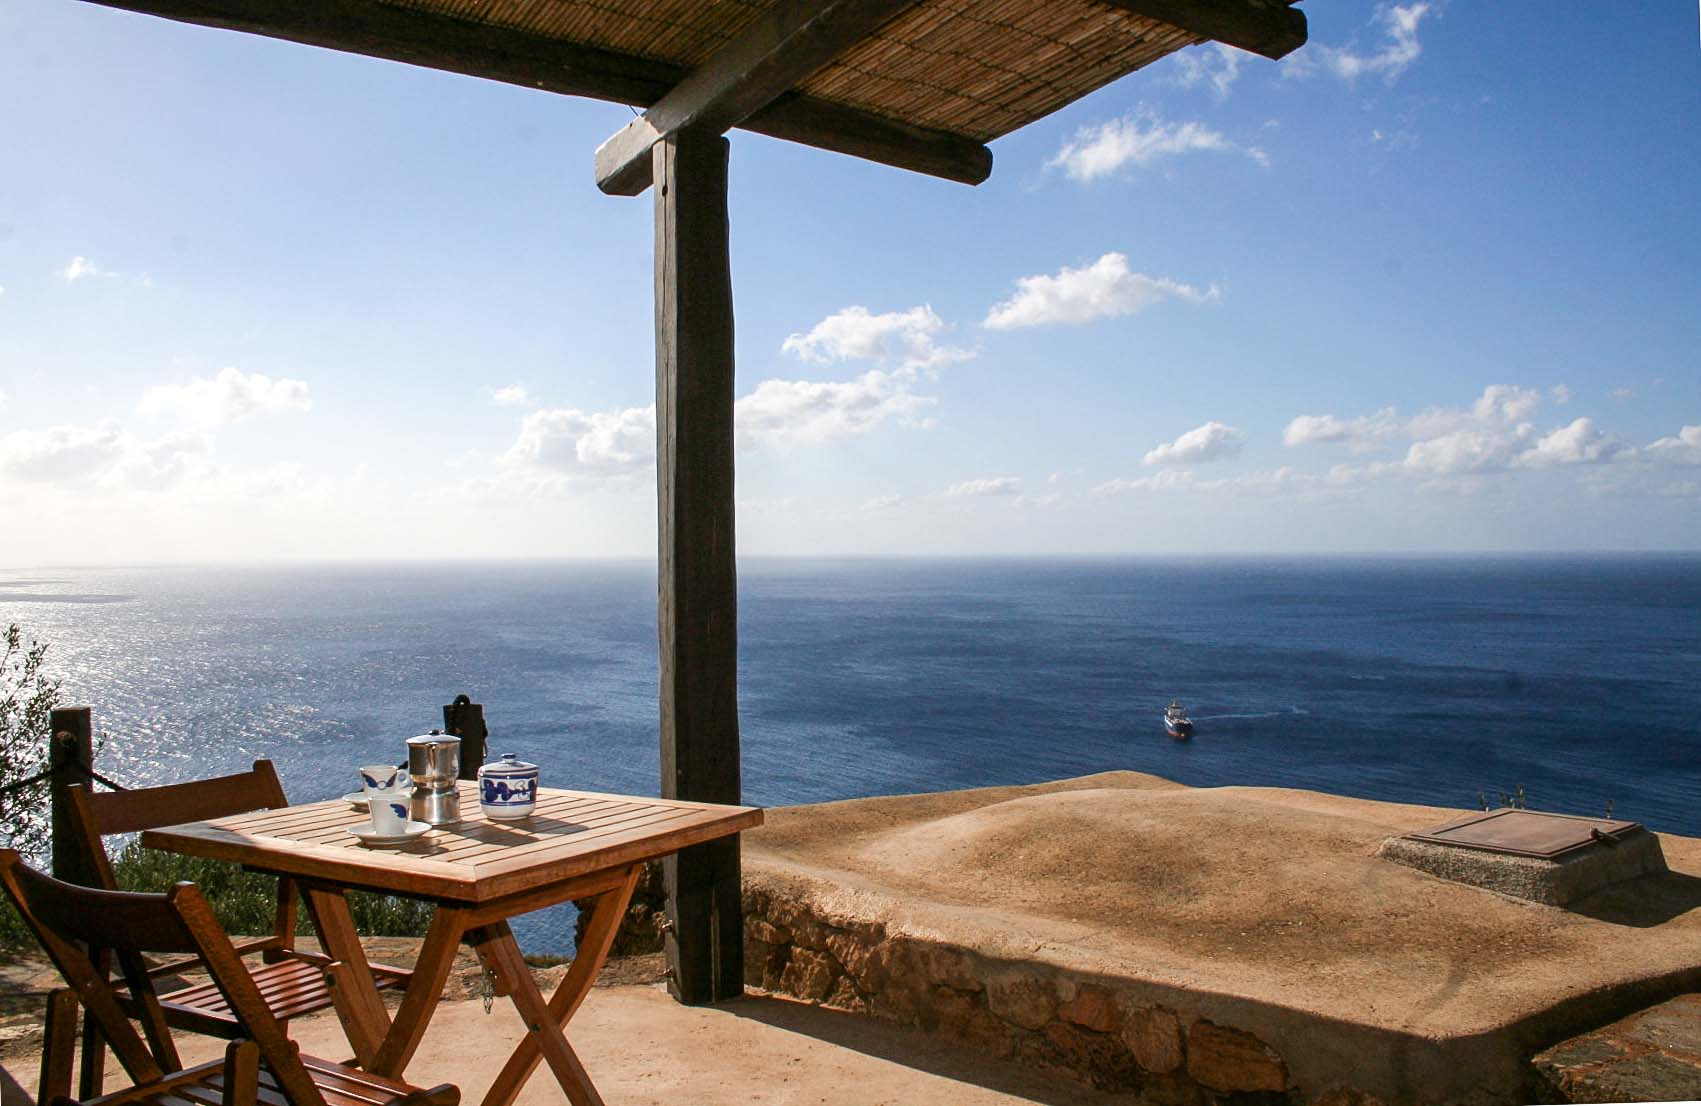 mare - the amazing equipped terrace with Seaview